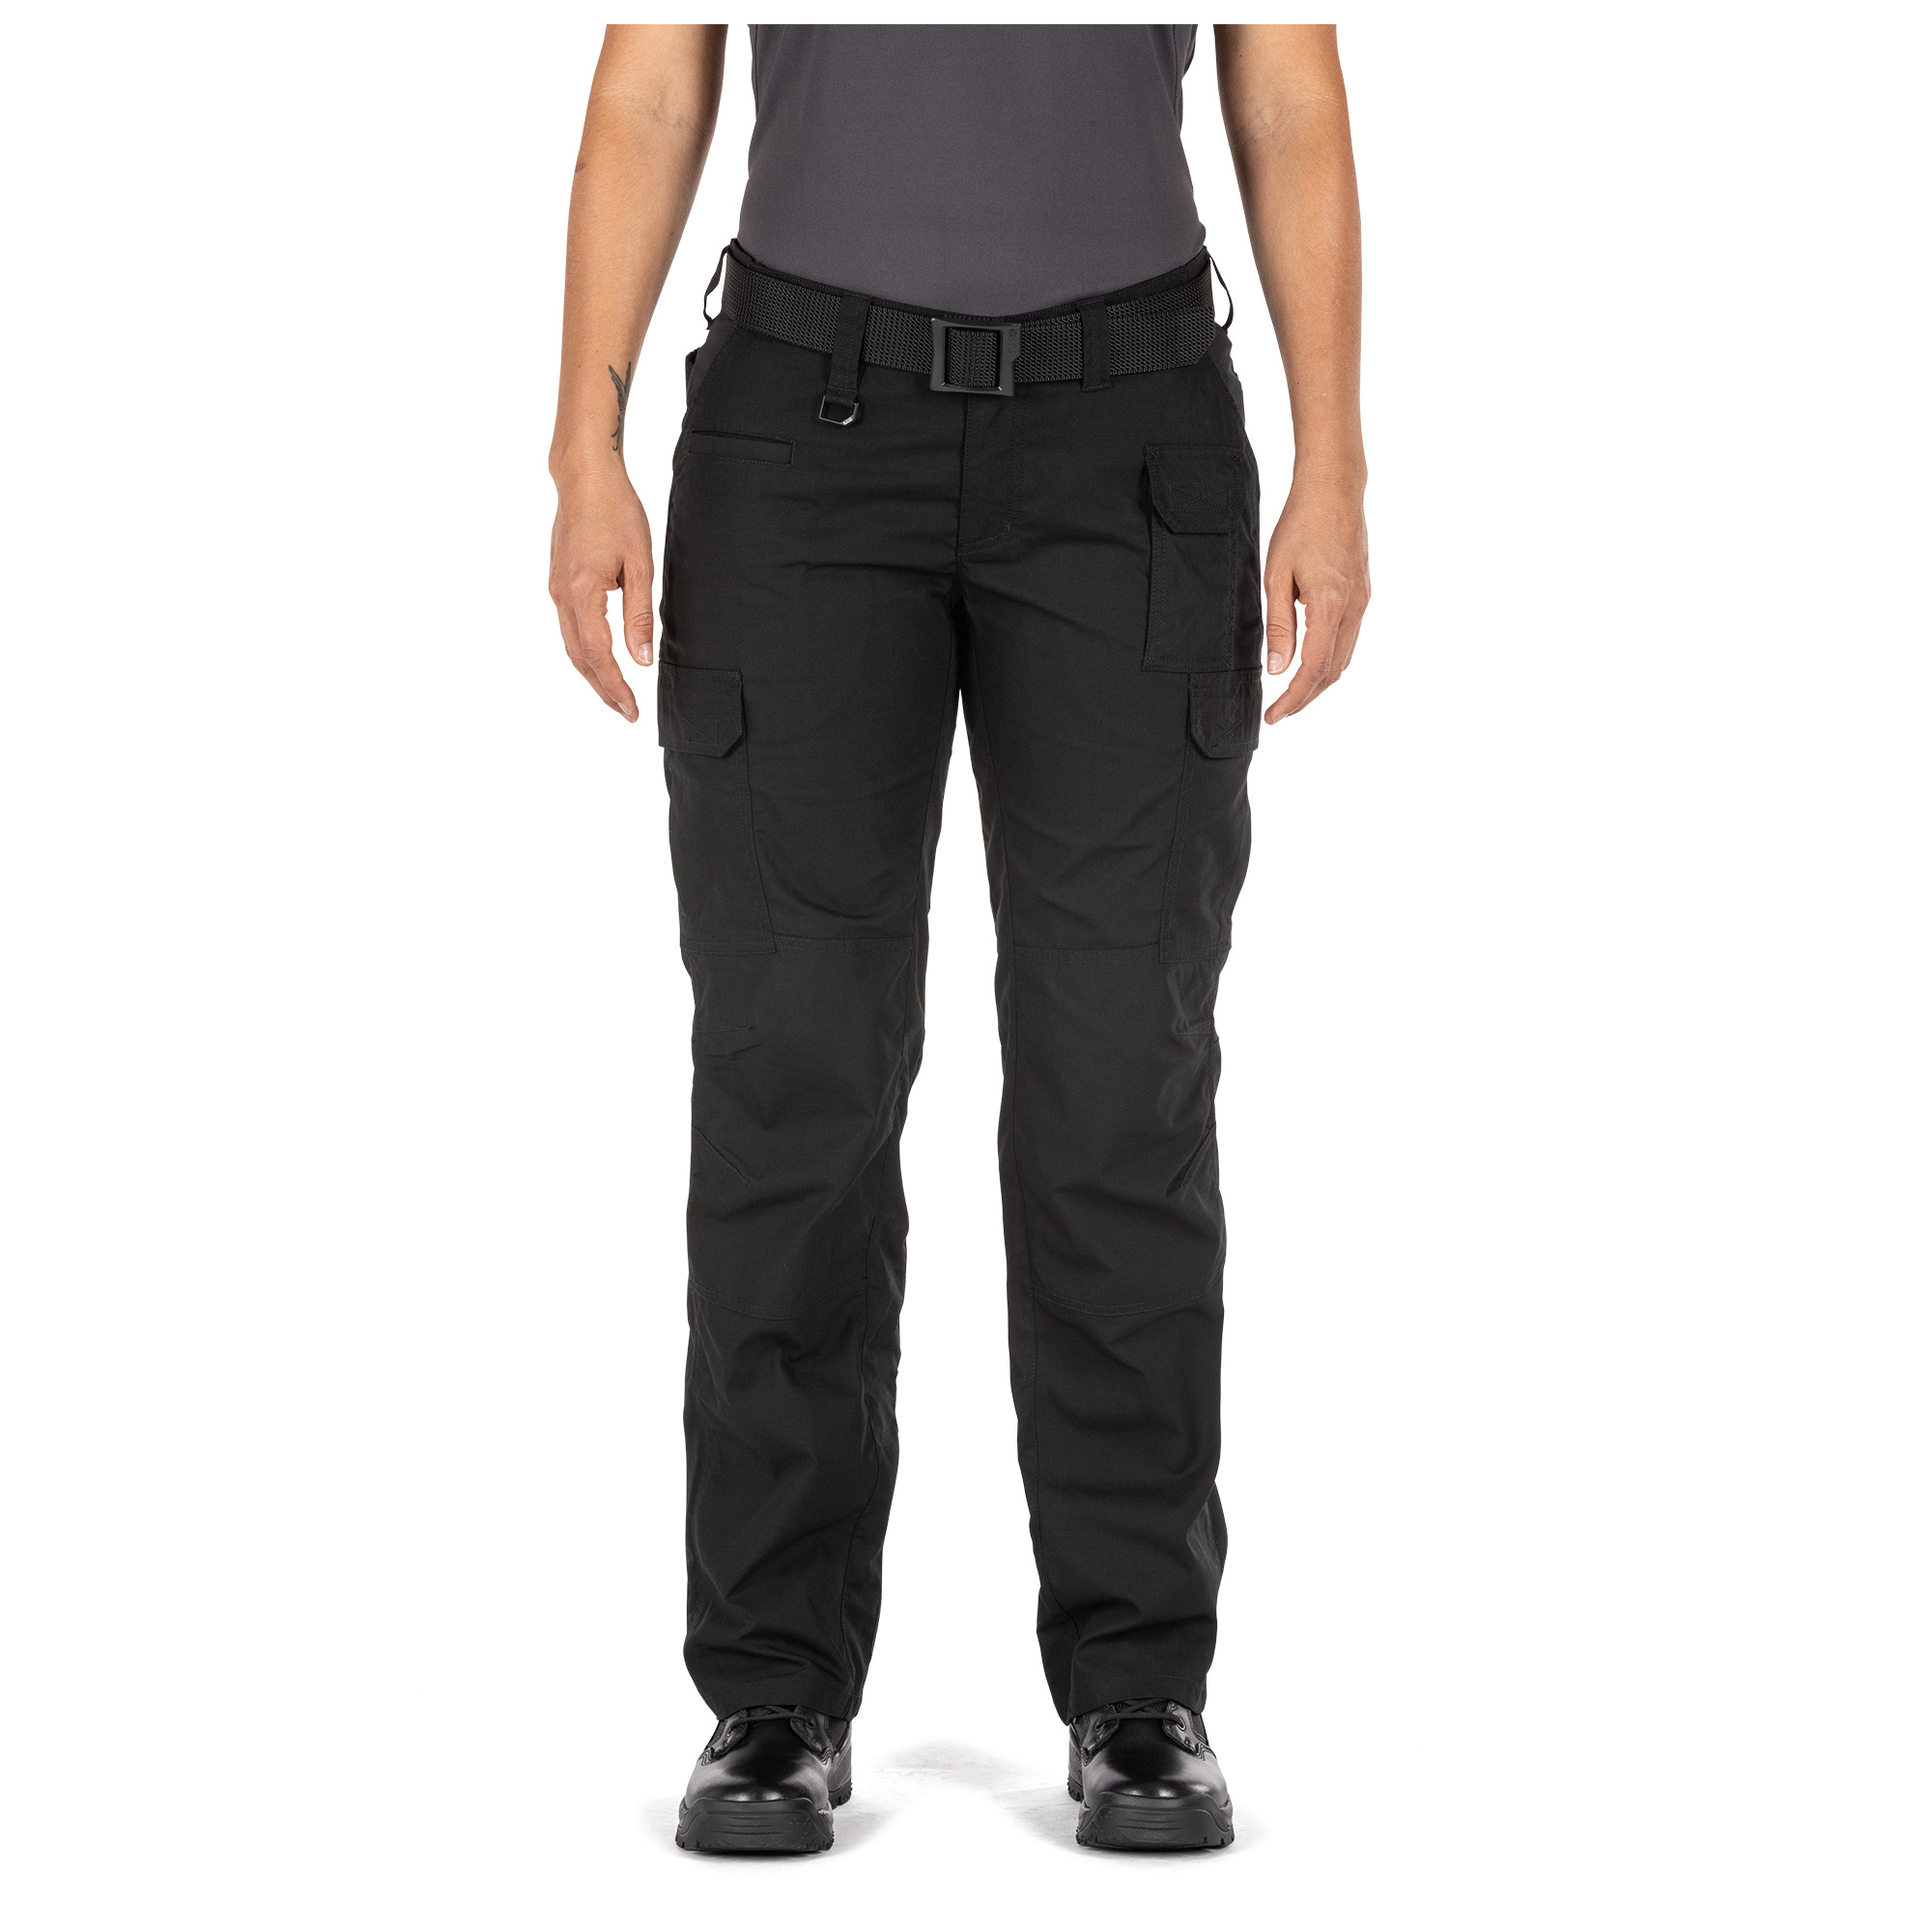 5.11 Tactical Women Women's ABR Pro Pant thumbnail